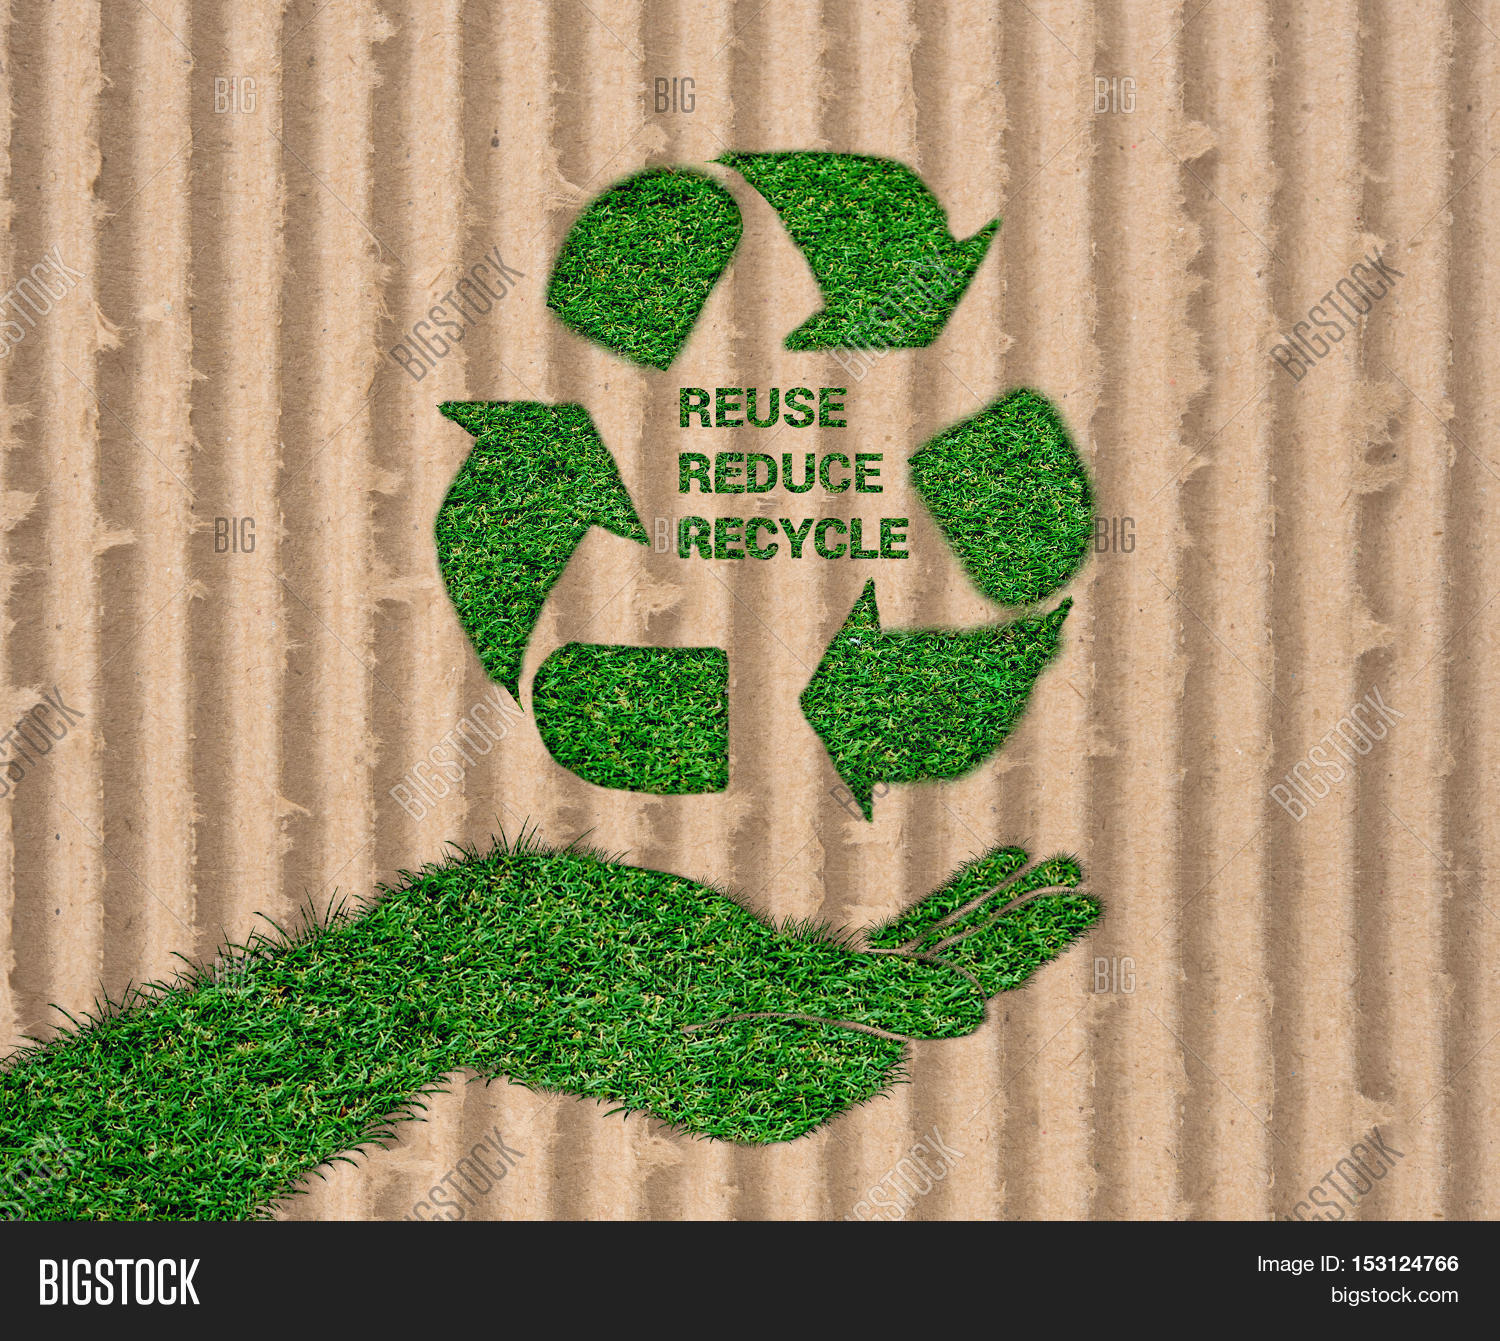 World environment day let 39 s save image photo bigstock for Reduce reuse recycle crafts